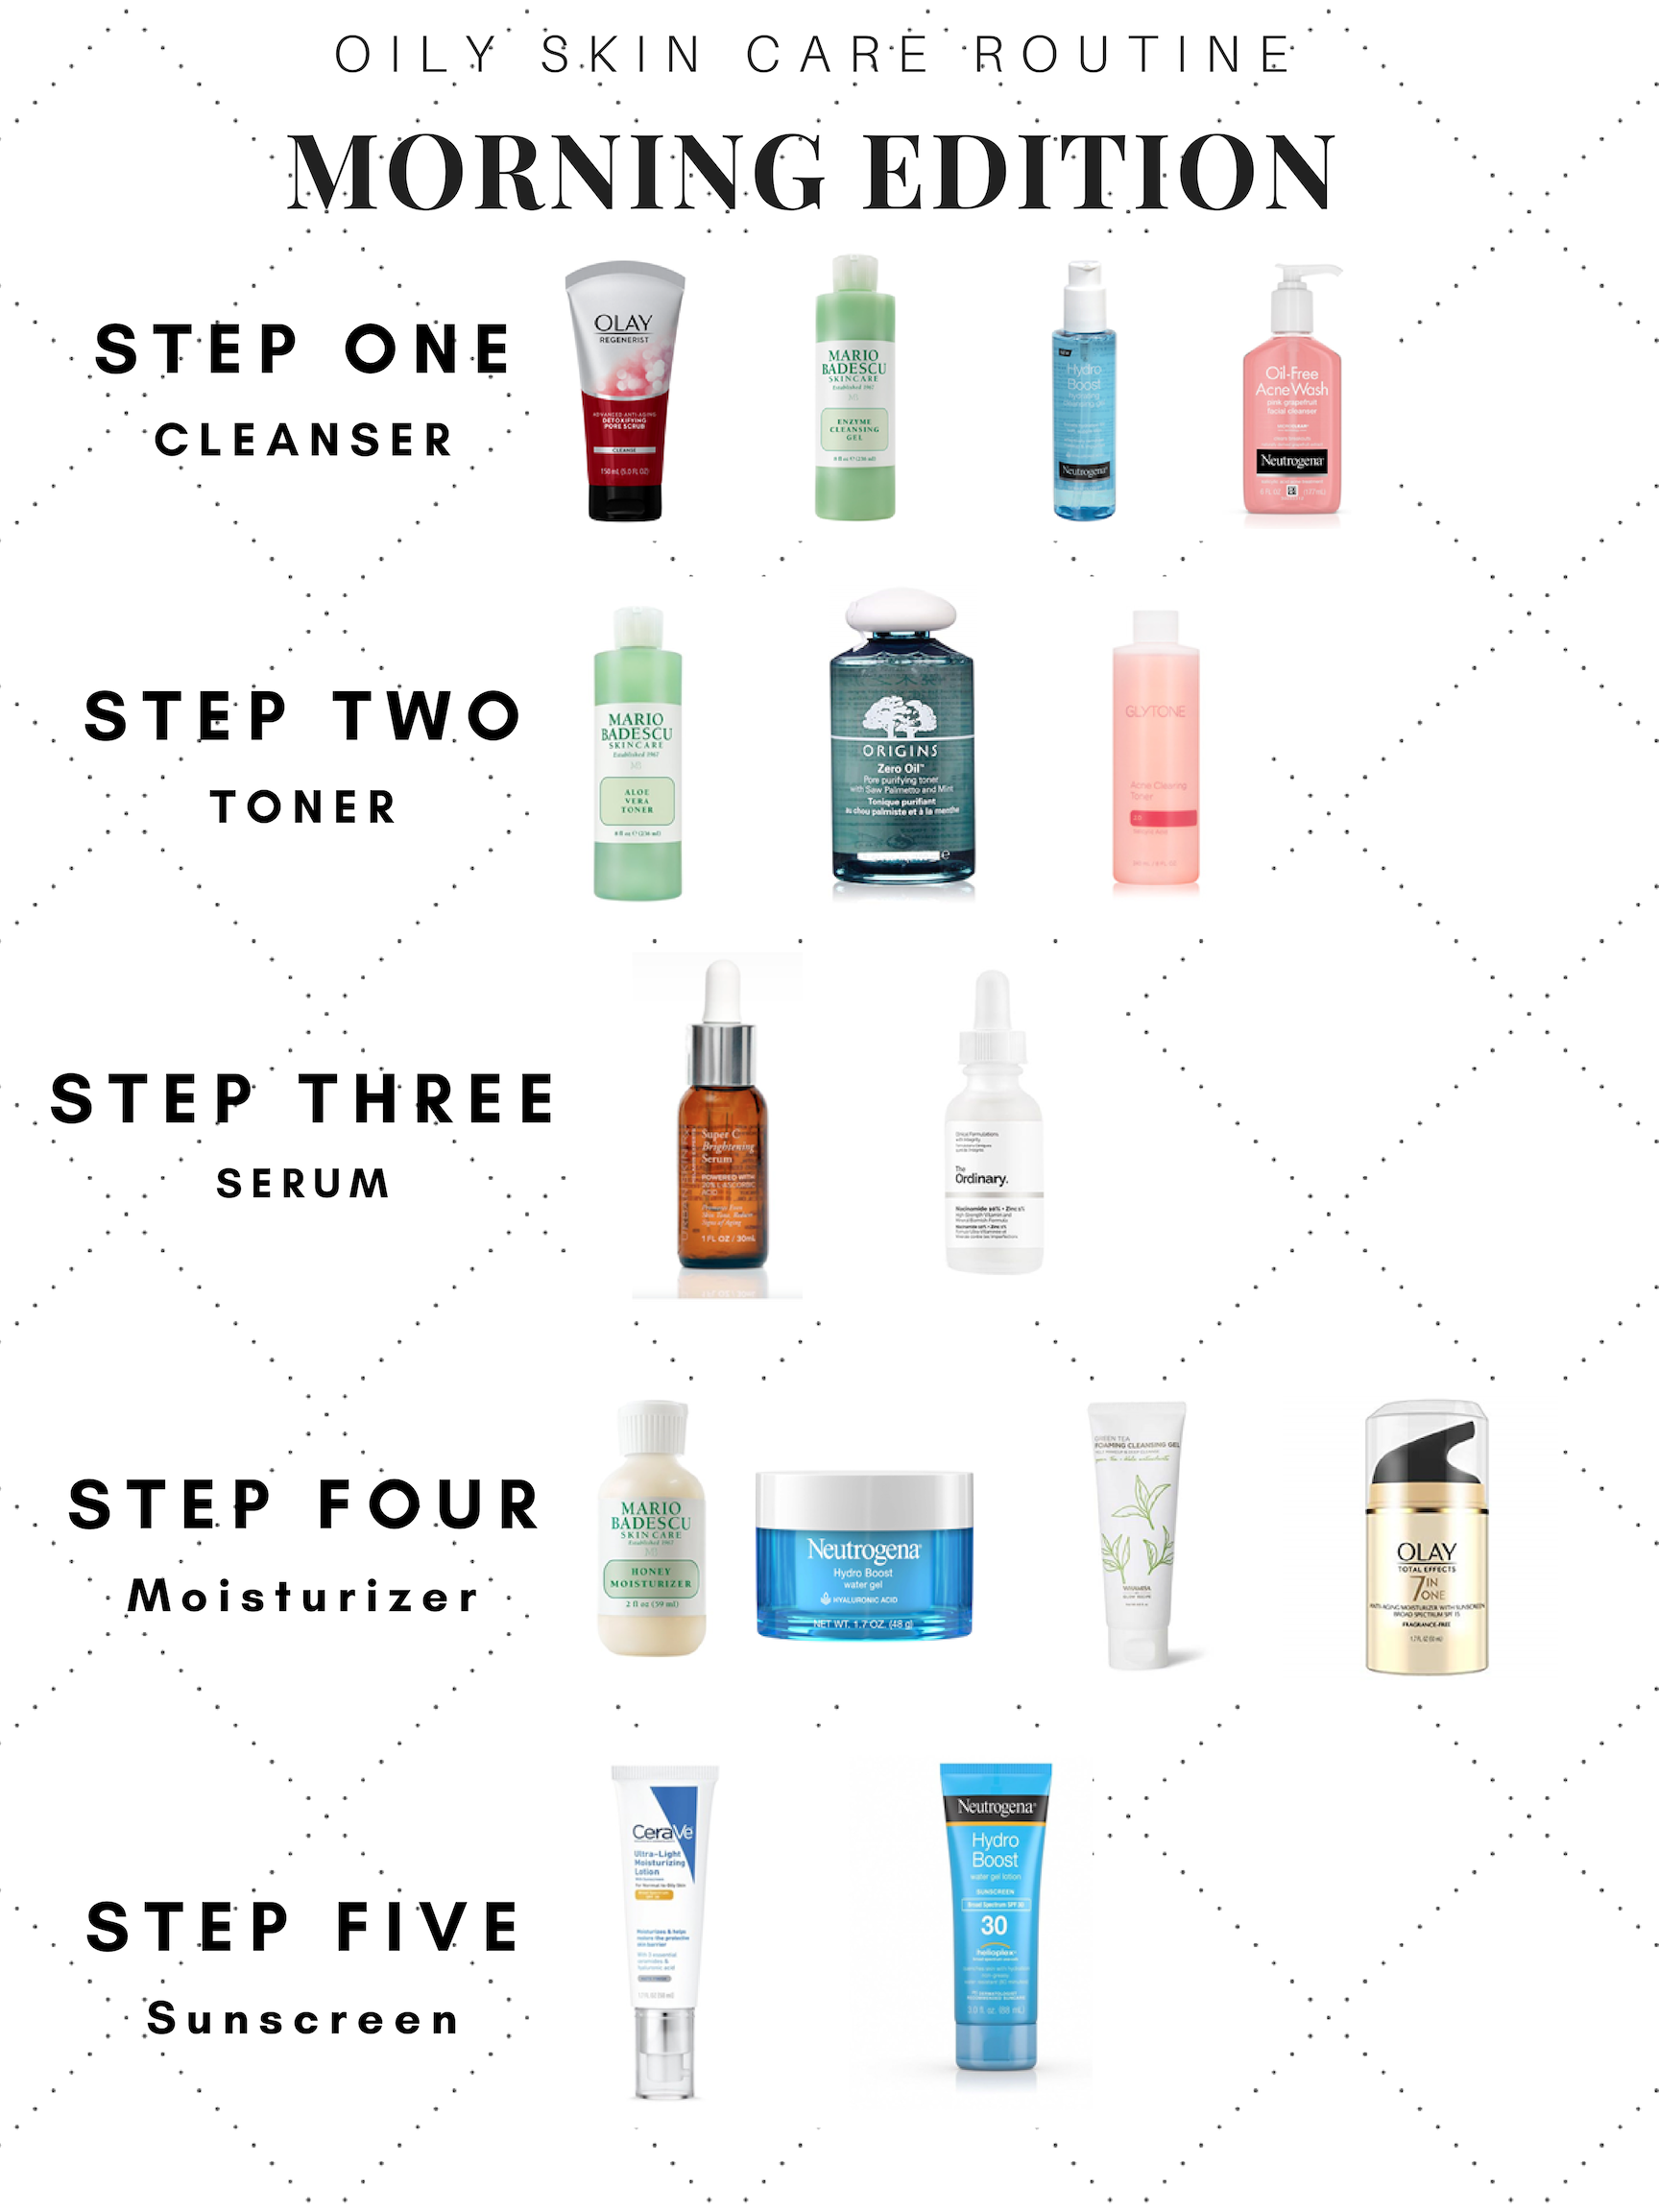 Morning Oily Skin Care Routine Step By Step Skin Care Guide With Affordable Healthy Products Oily Skin Care Skin Care Guide Skin Care Routine Steps